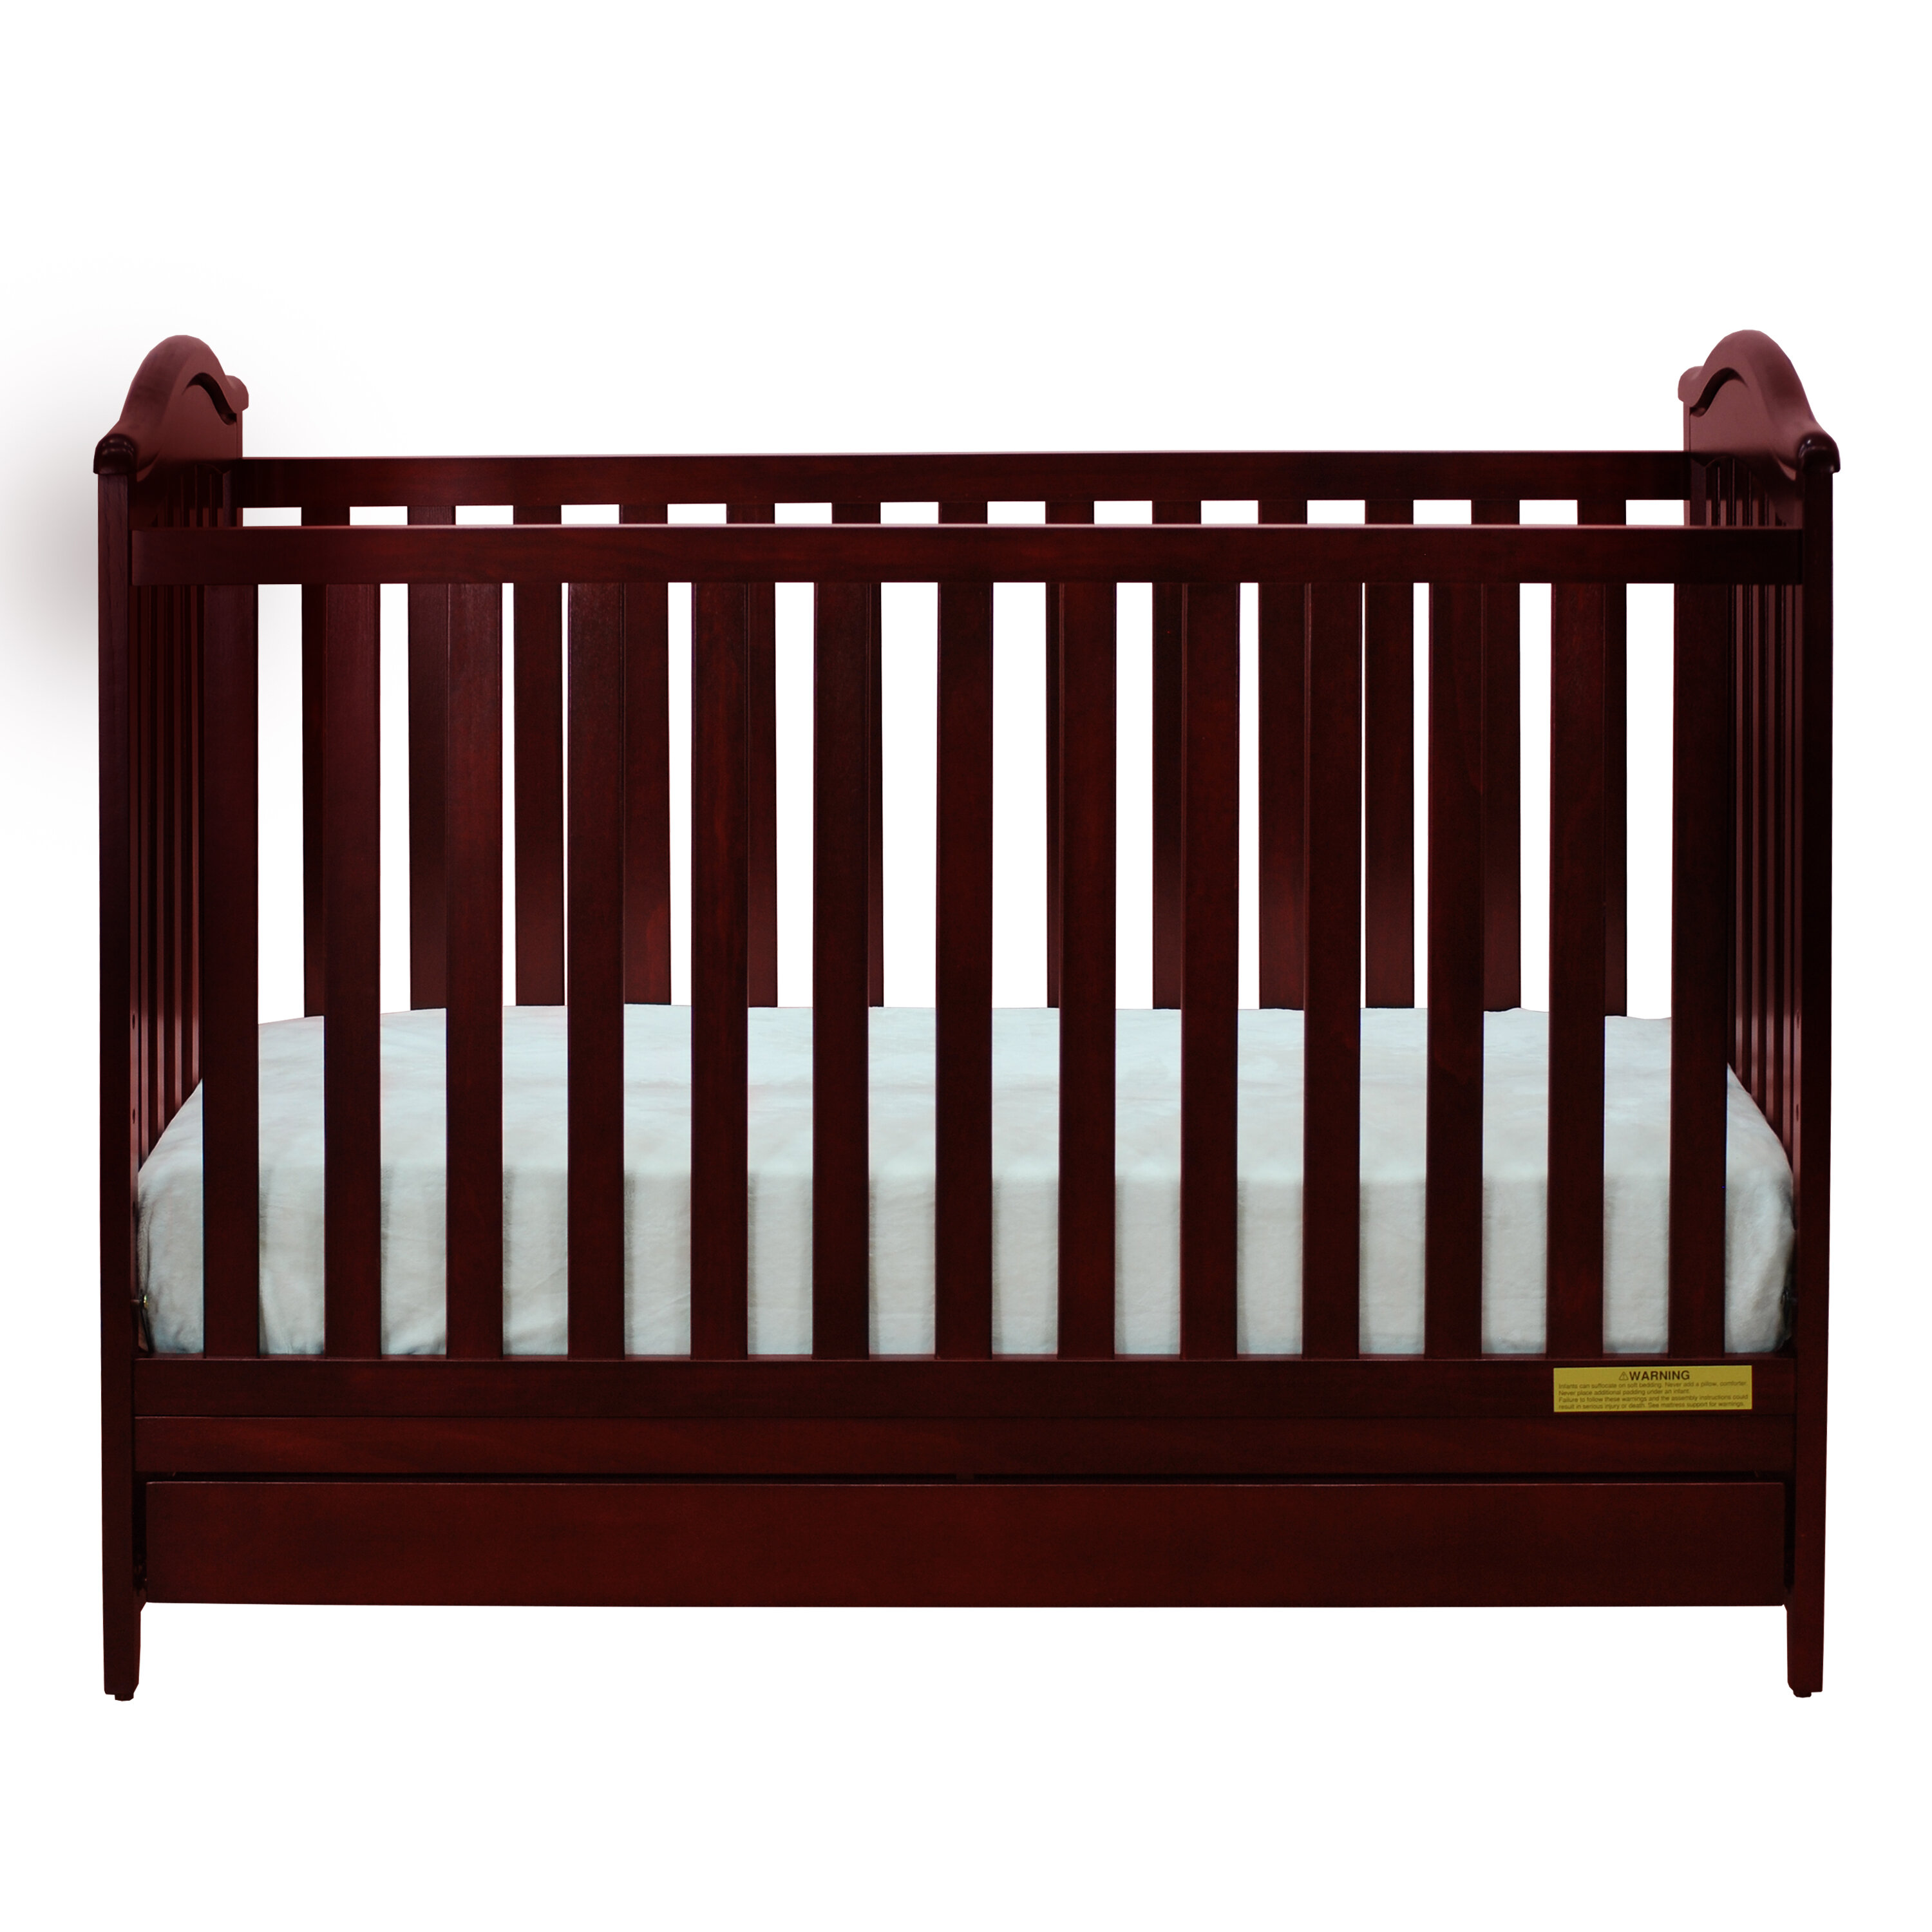 Baby Crib Toddler Bed 3in1 Convertible in Cherry Solid Wood with Child Safety